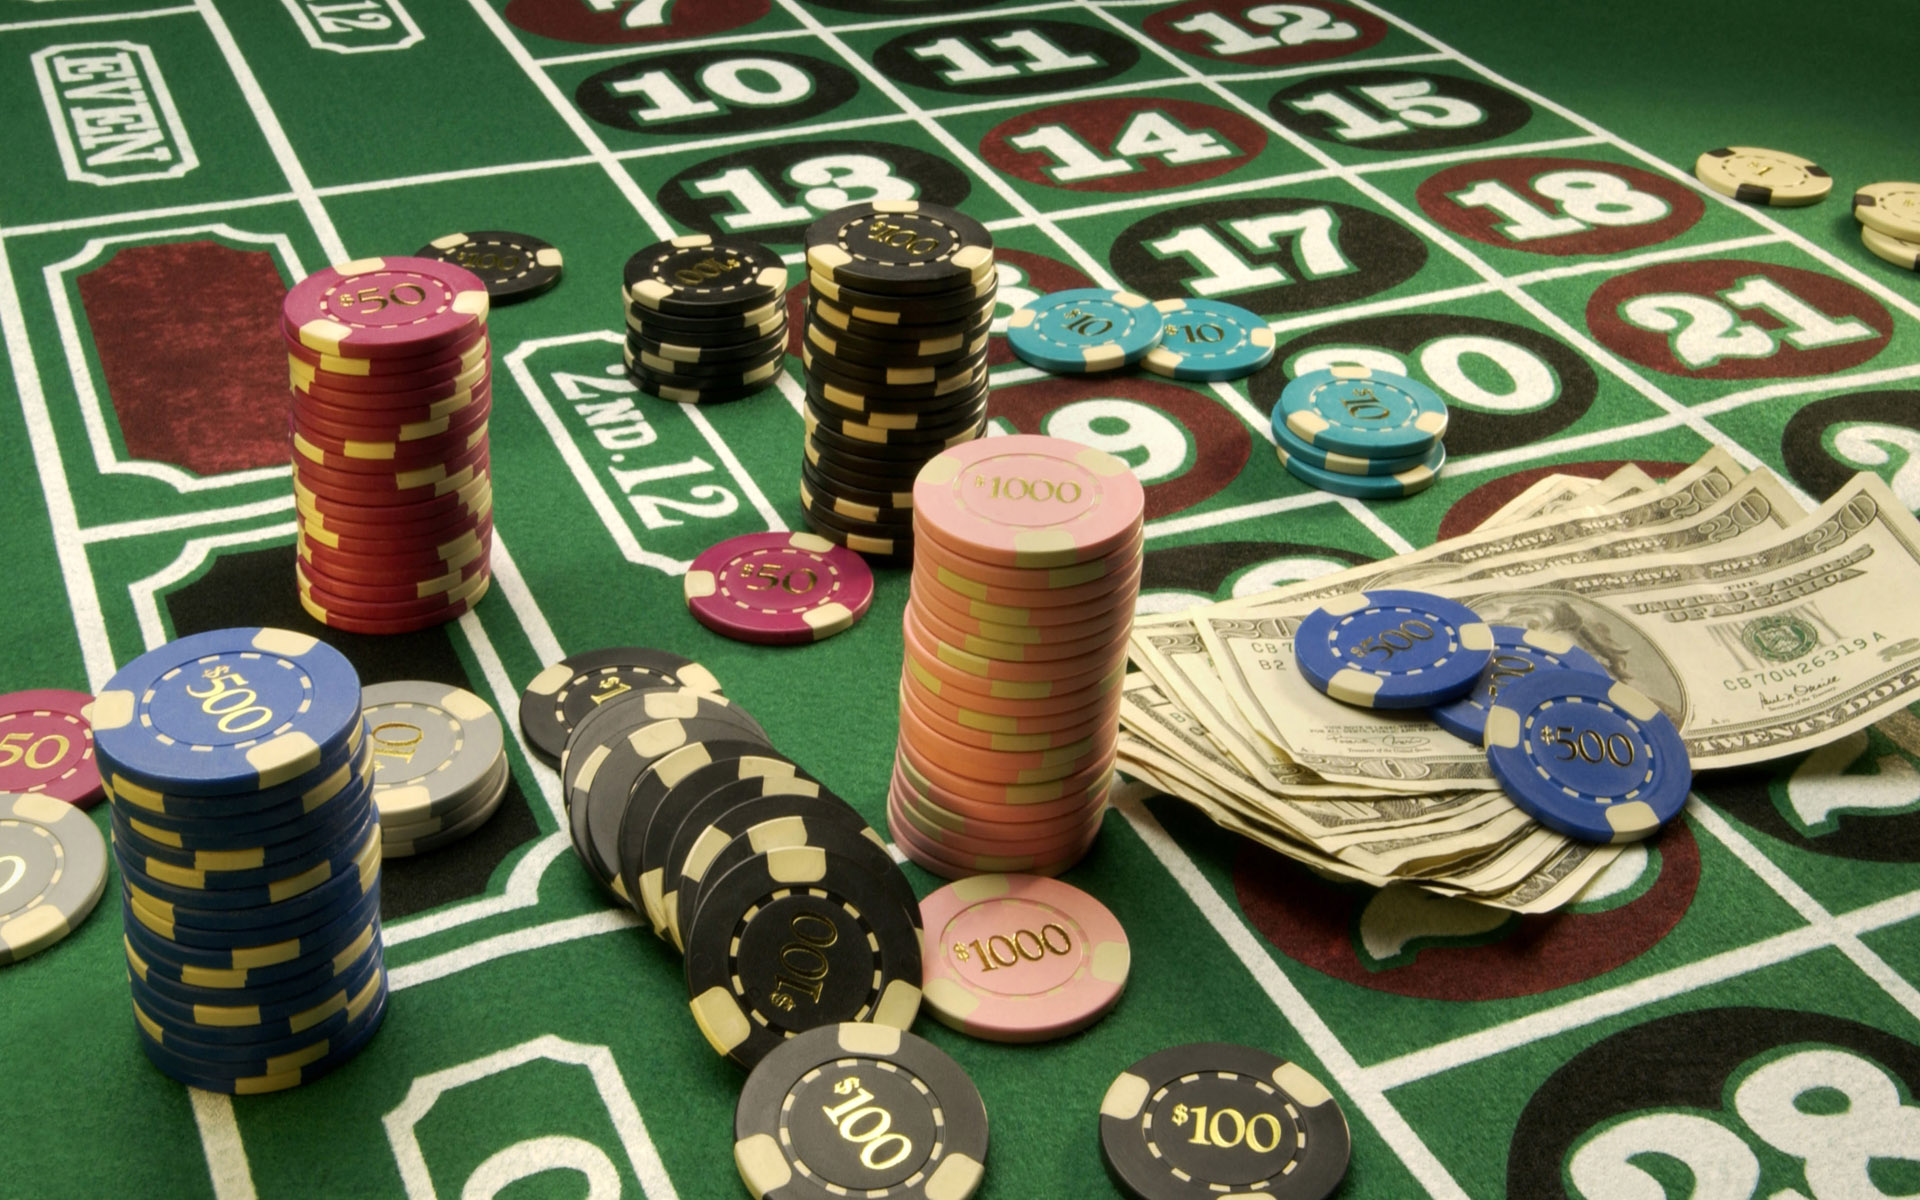 Free Online Poker Guide To The Art Of Winning By Keeping Poker Simple